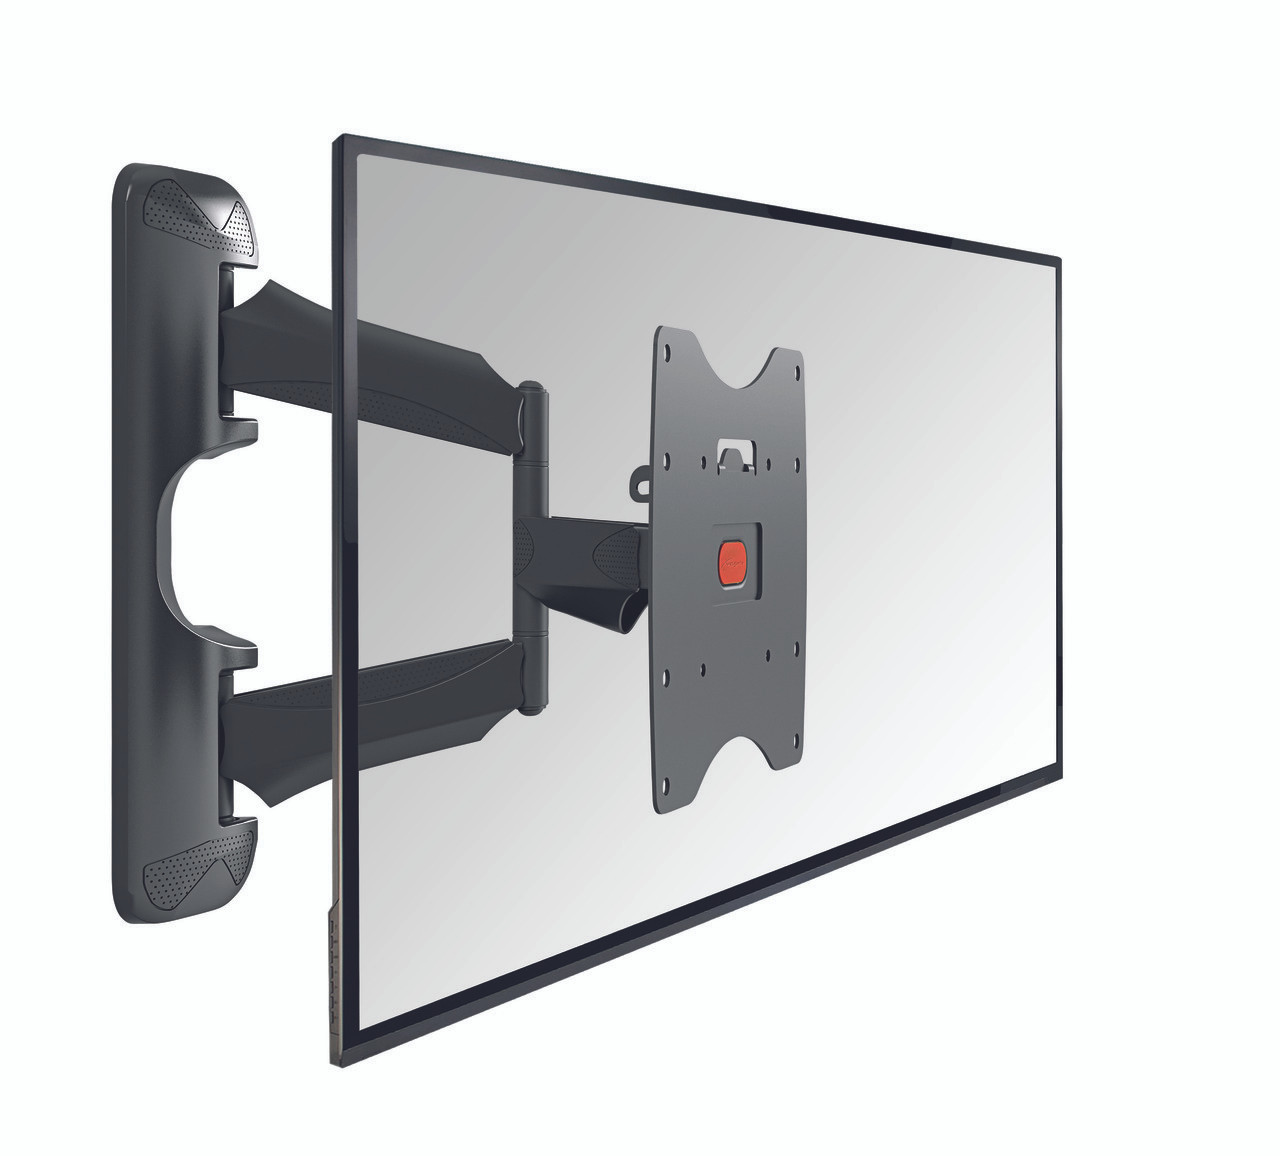 An image of Vogel's Base 45 S Wall Mount for Plasma / LCD / TV 19-37